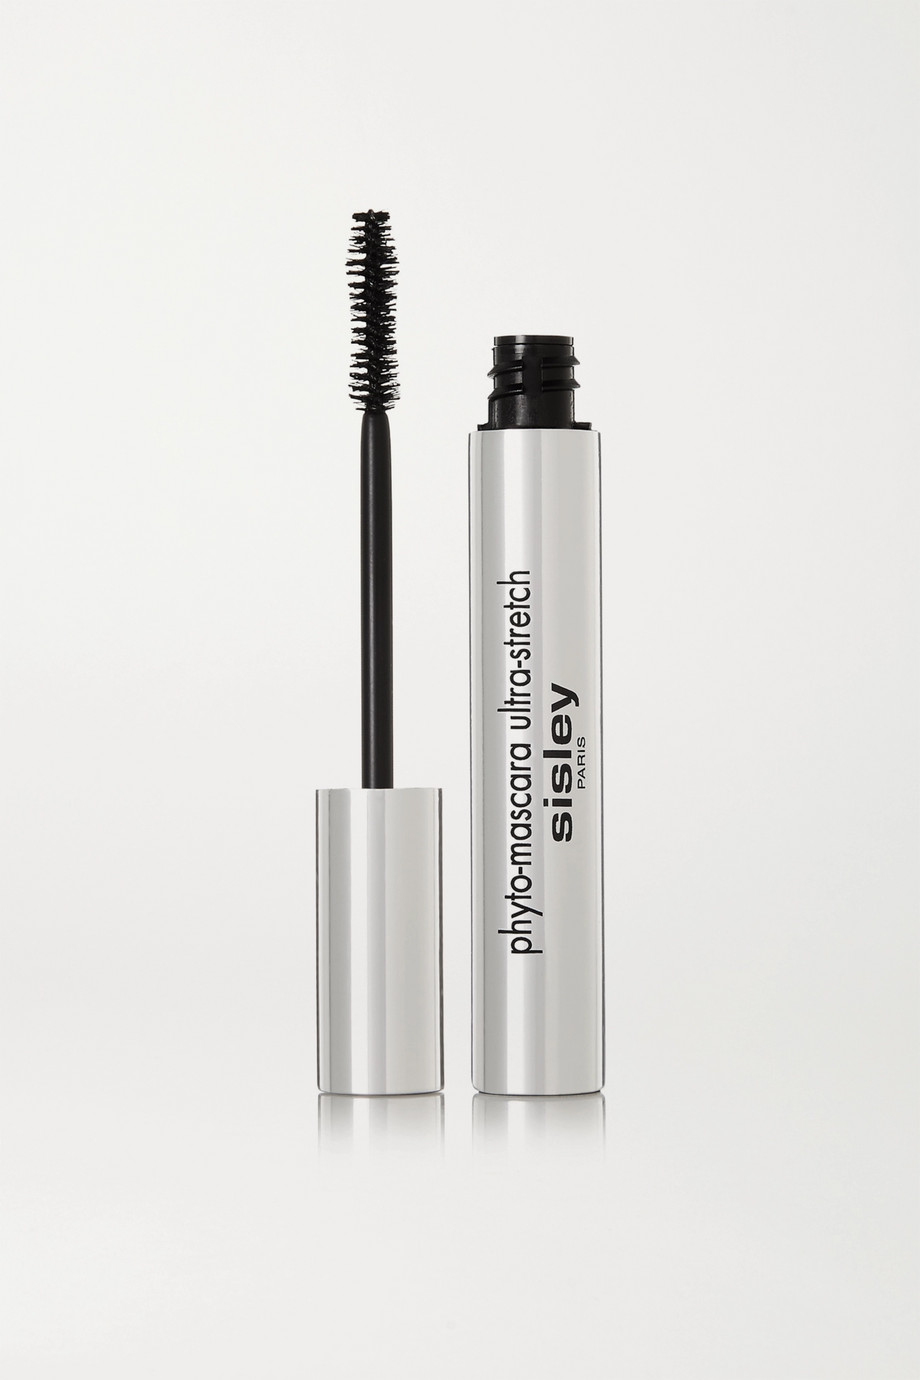 Sisley Phyto Ultra-Stretch Mascara – 1 Deep Black – Mascara